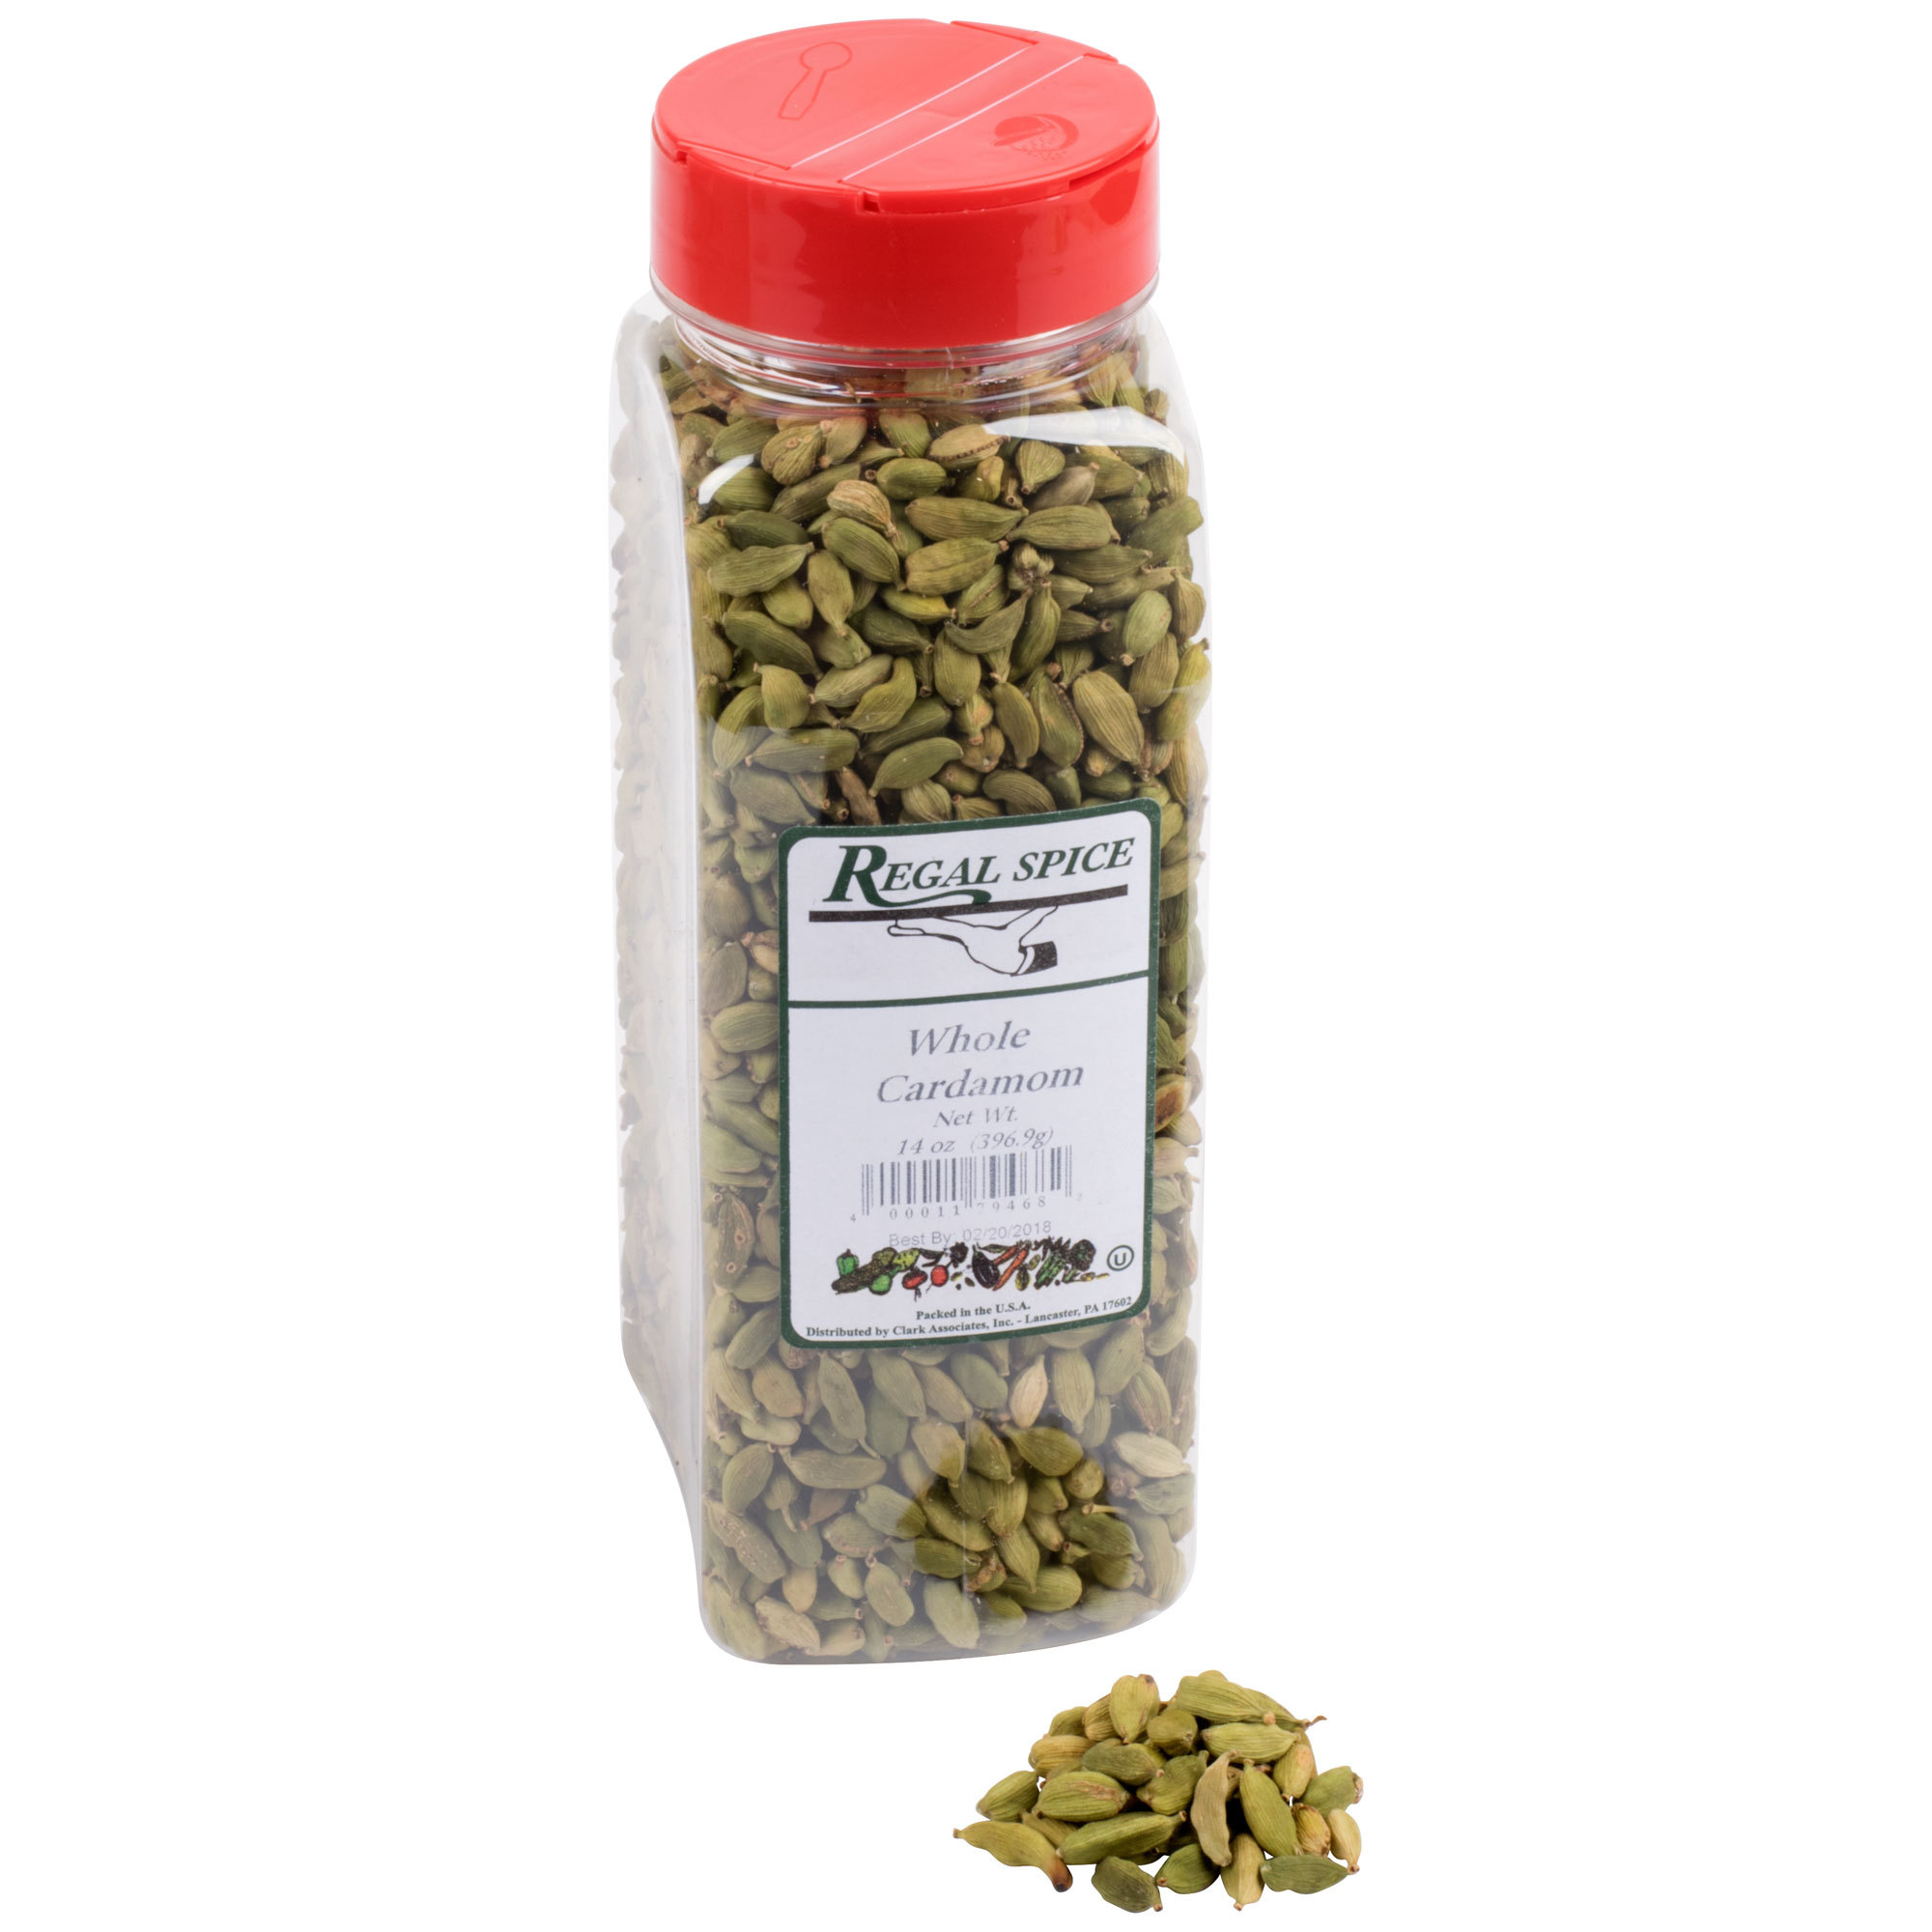 Кардамон целые семена Regal Whole Cardamom 397 гр (14 oz.) Best before 06\05\2018